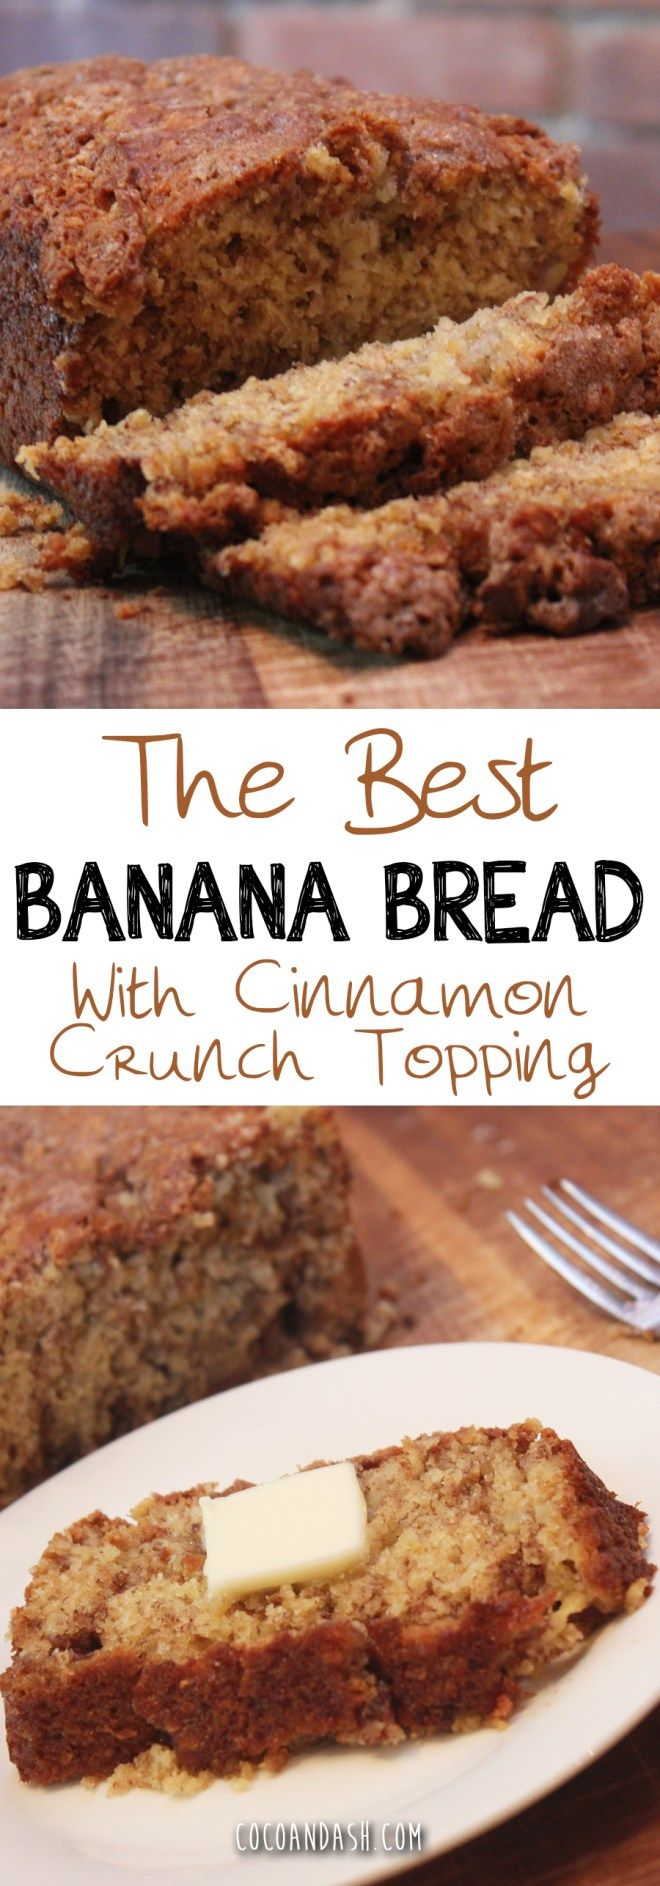 The Best Banana Bread                                                                                                                                                      More